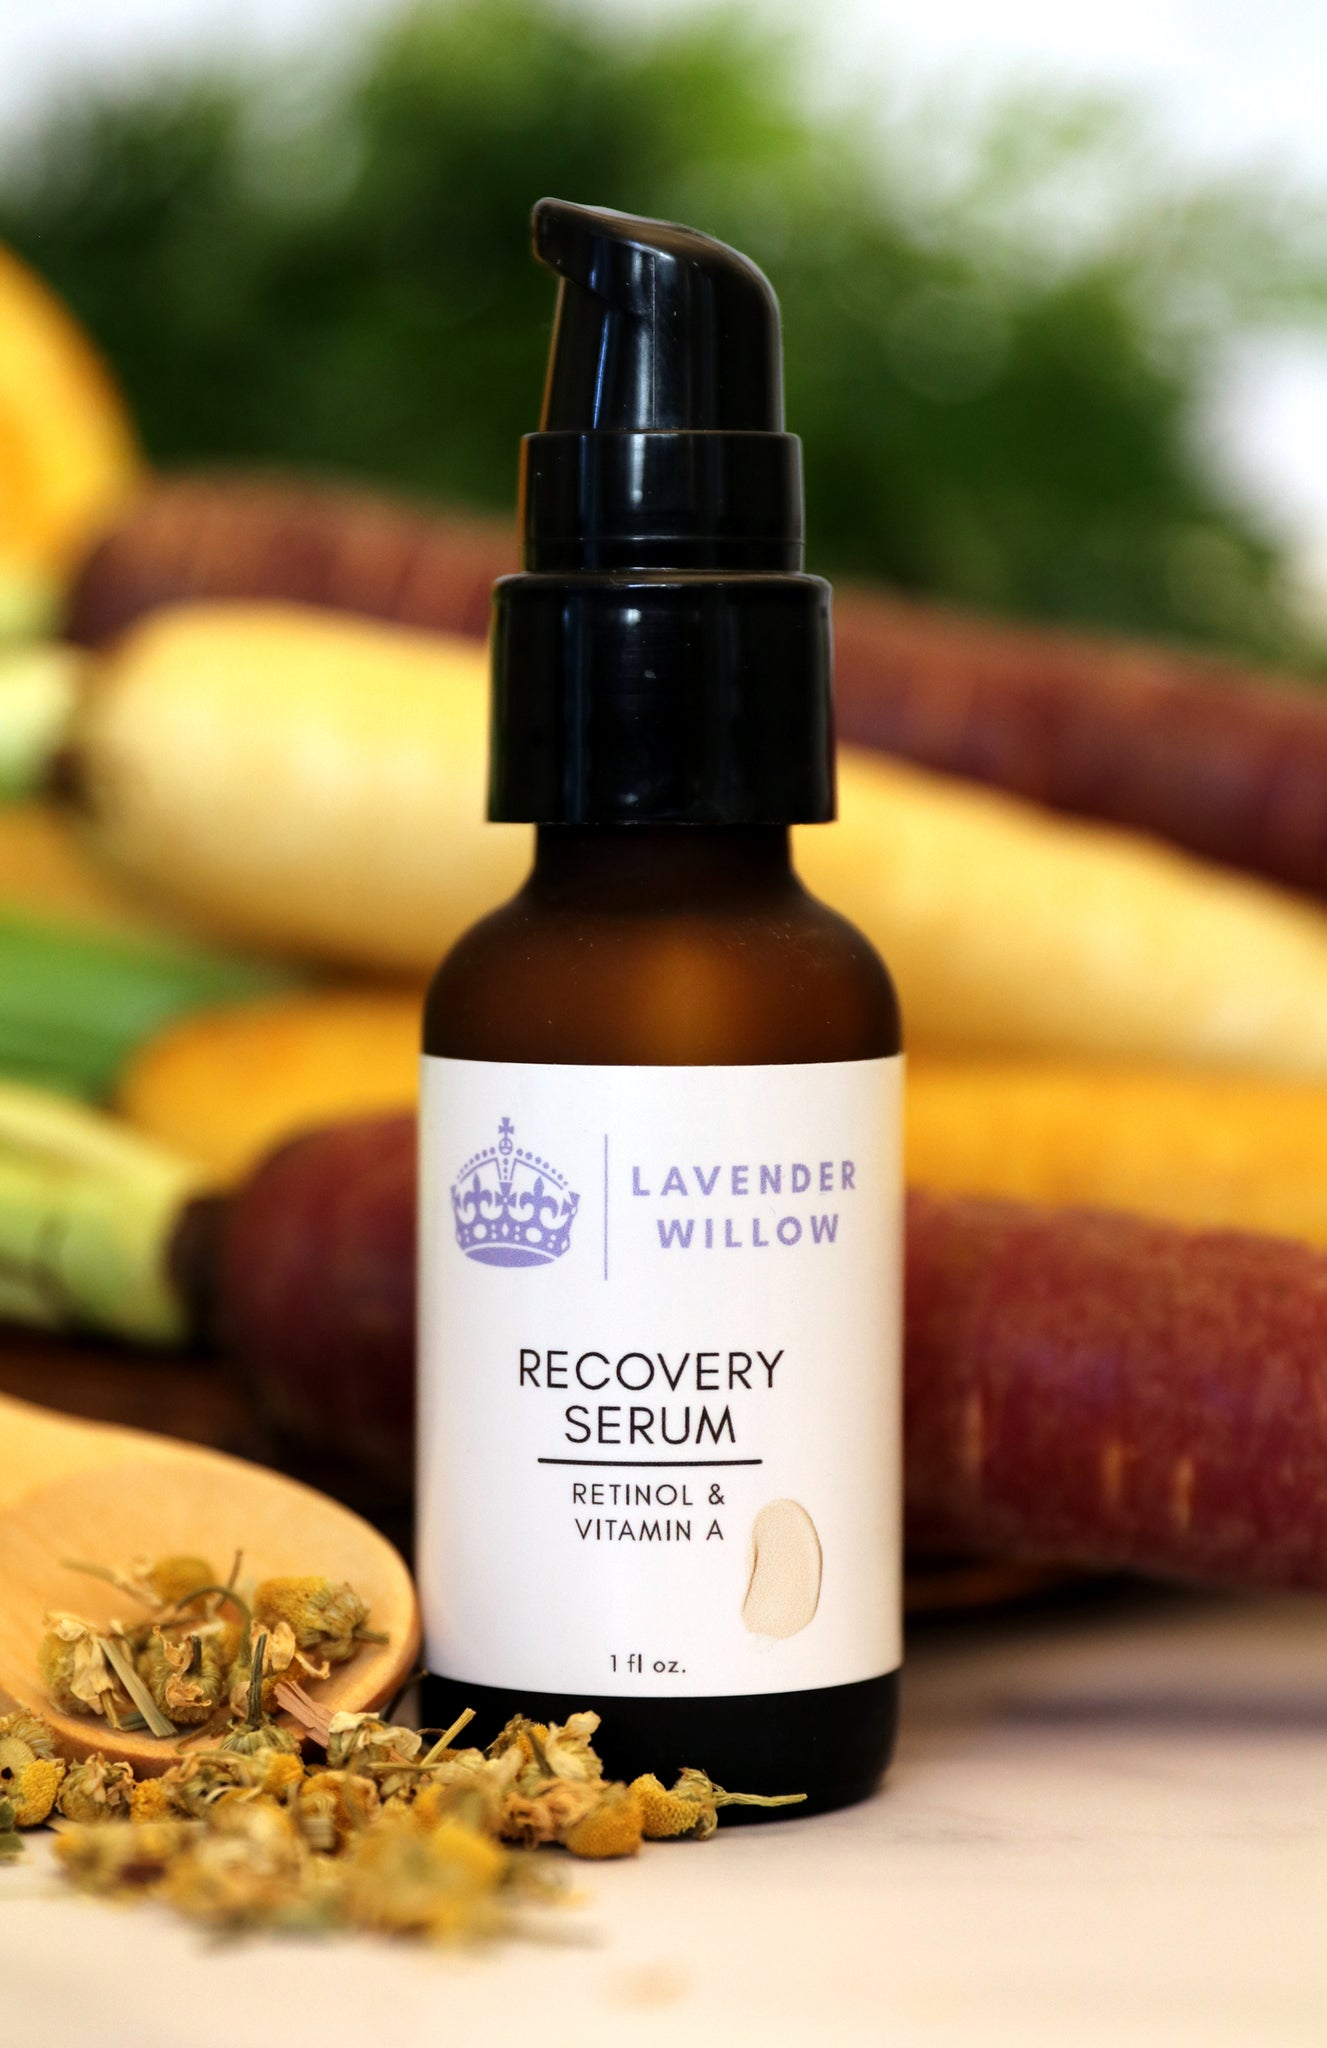 RECOVERY SERUM - Lavender Willow